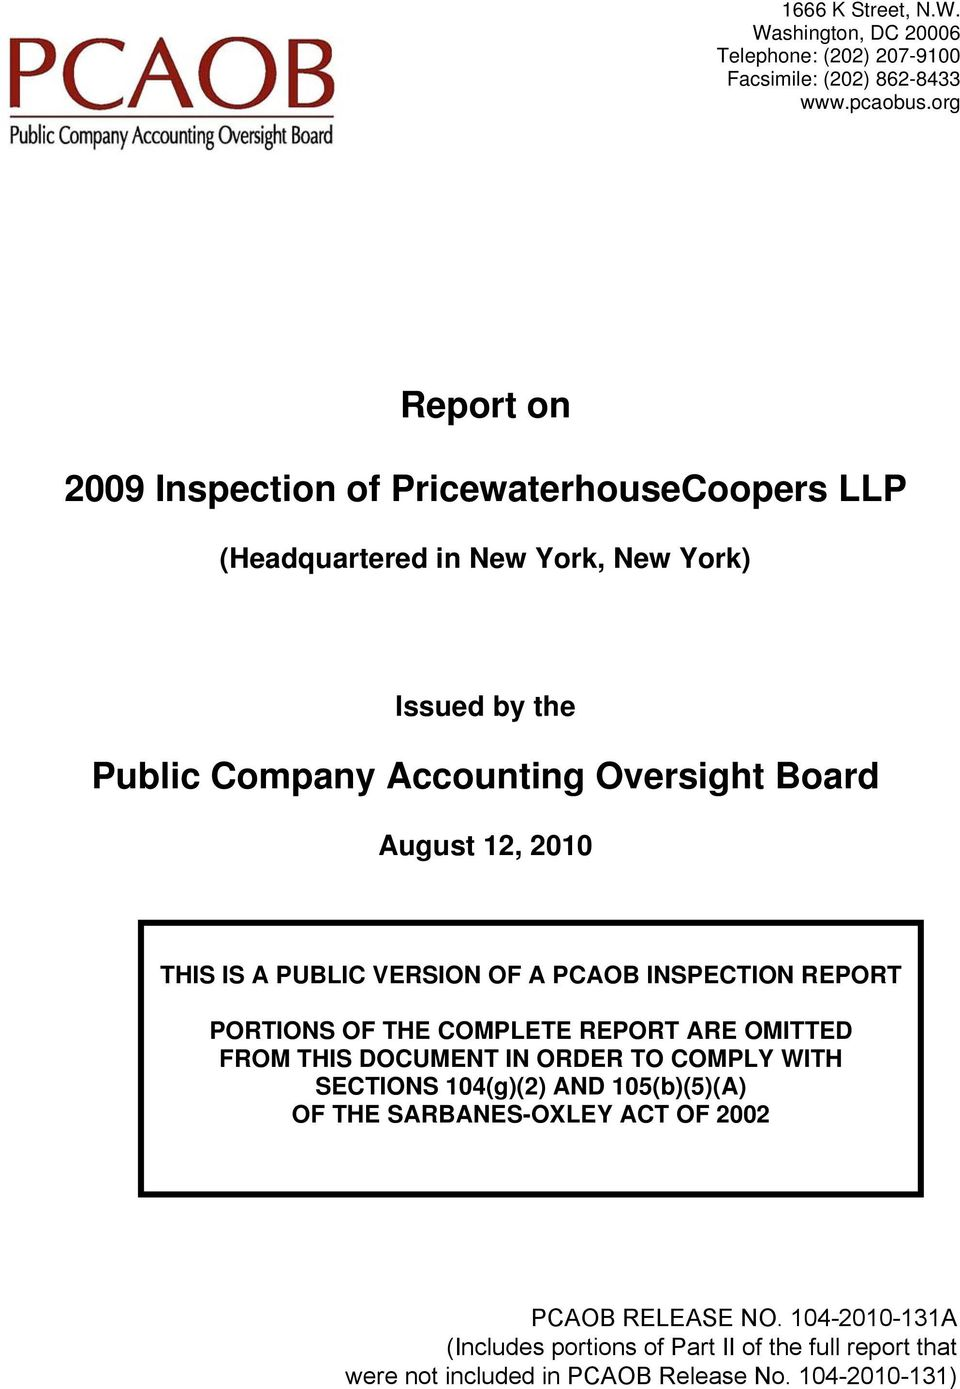 A PCAOB INSPECTION REPORT PORTIONS OF THE COMPLETE REPORT ARE OMITTED FROM THIS DOCUMENT IN ORDER TO COMPLY WITH SECTIONS 104(g)(2) AND